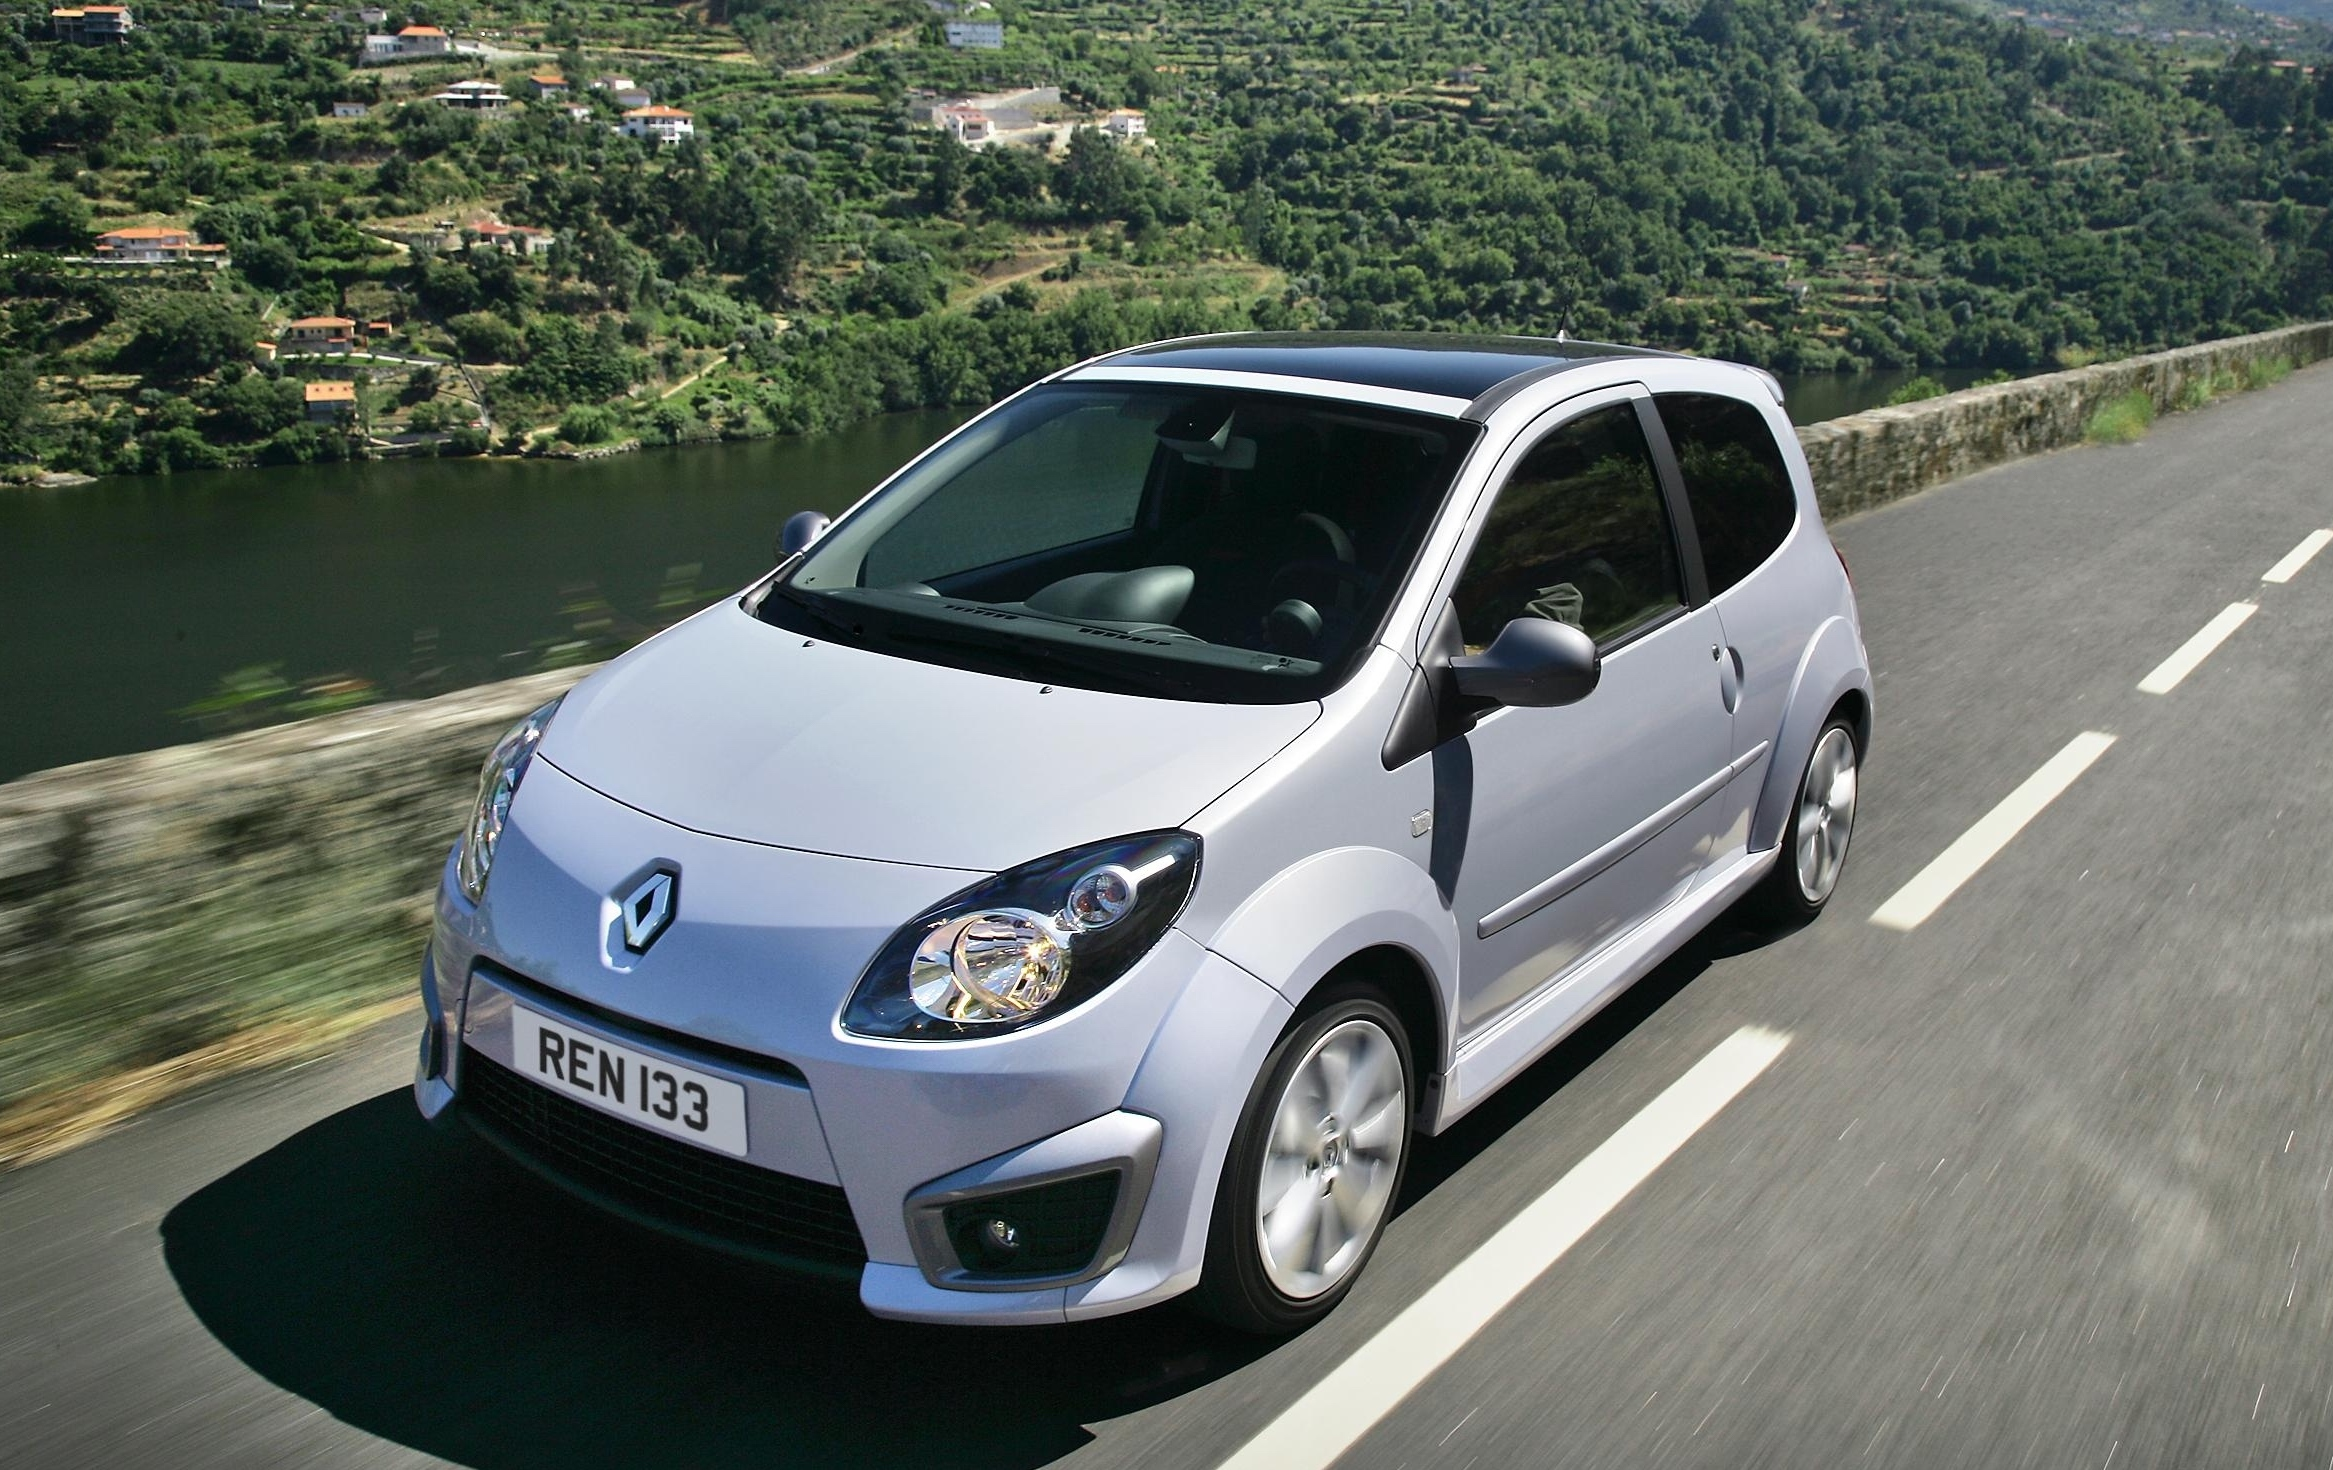 Renaultsport's Twingo was a hoot in the bends